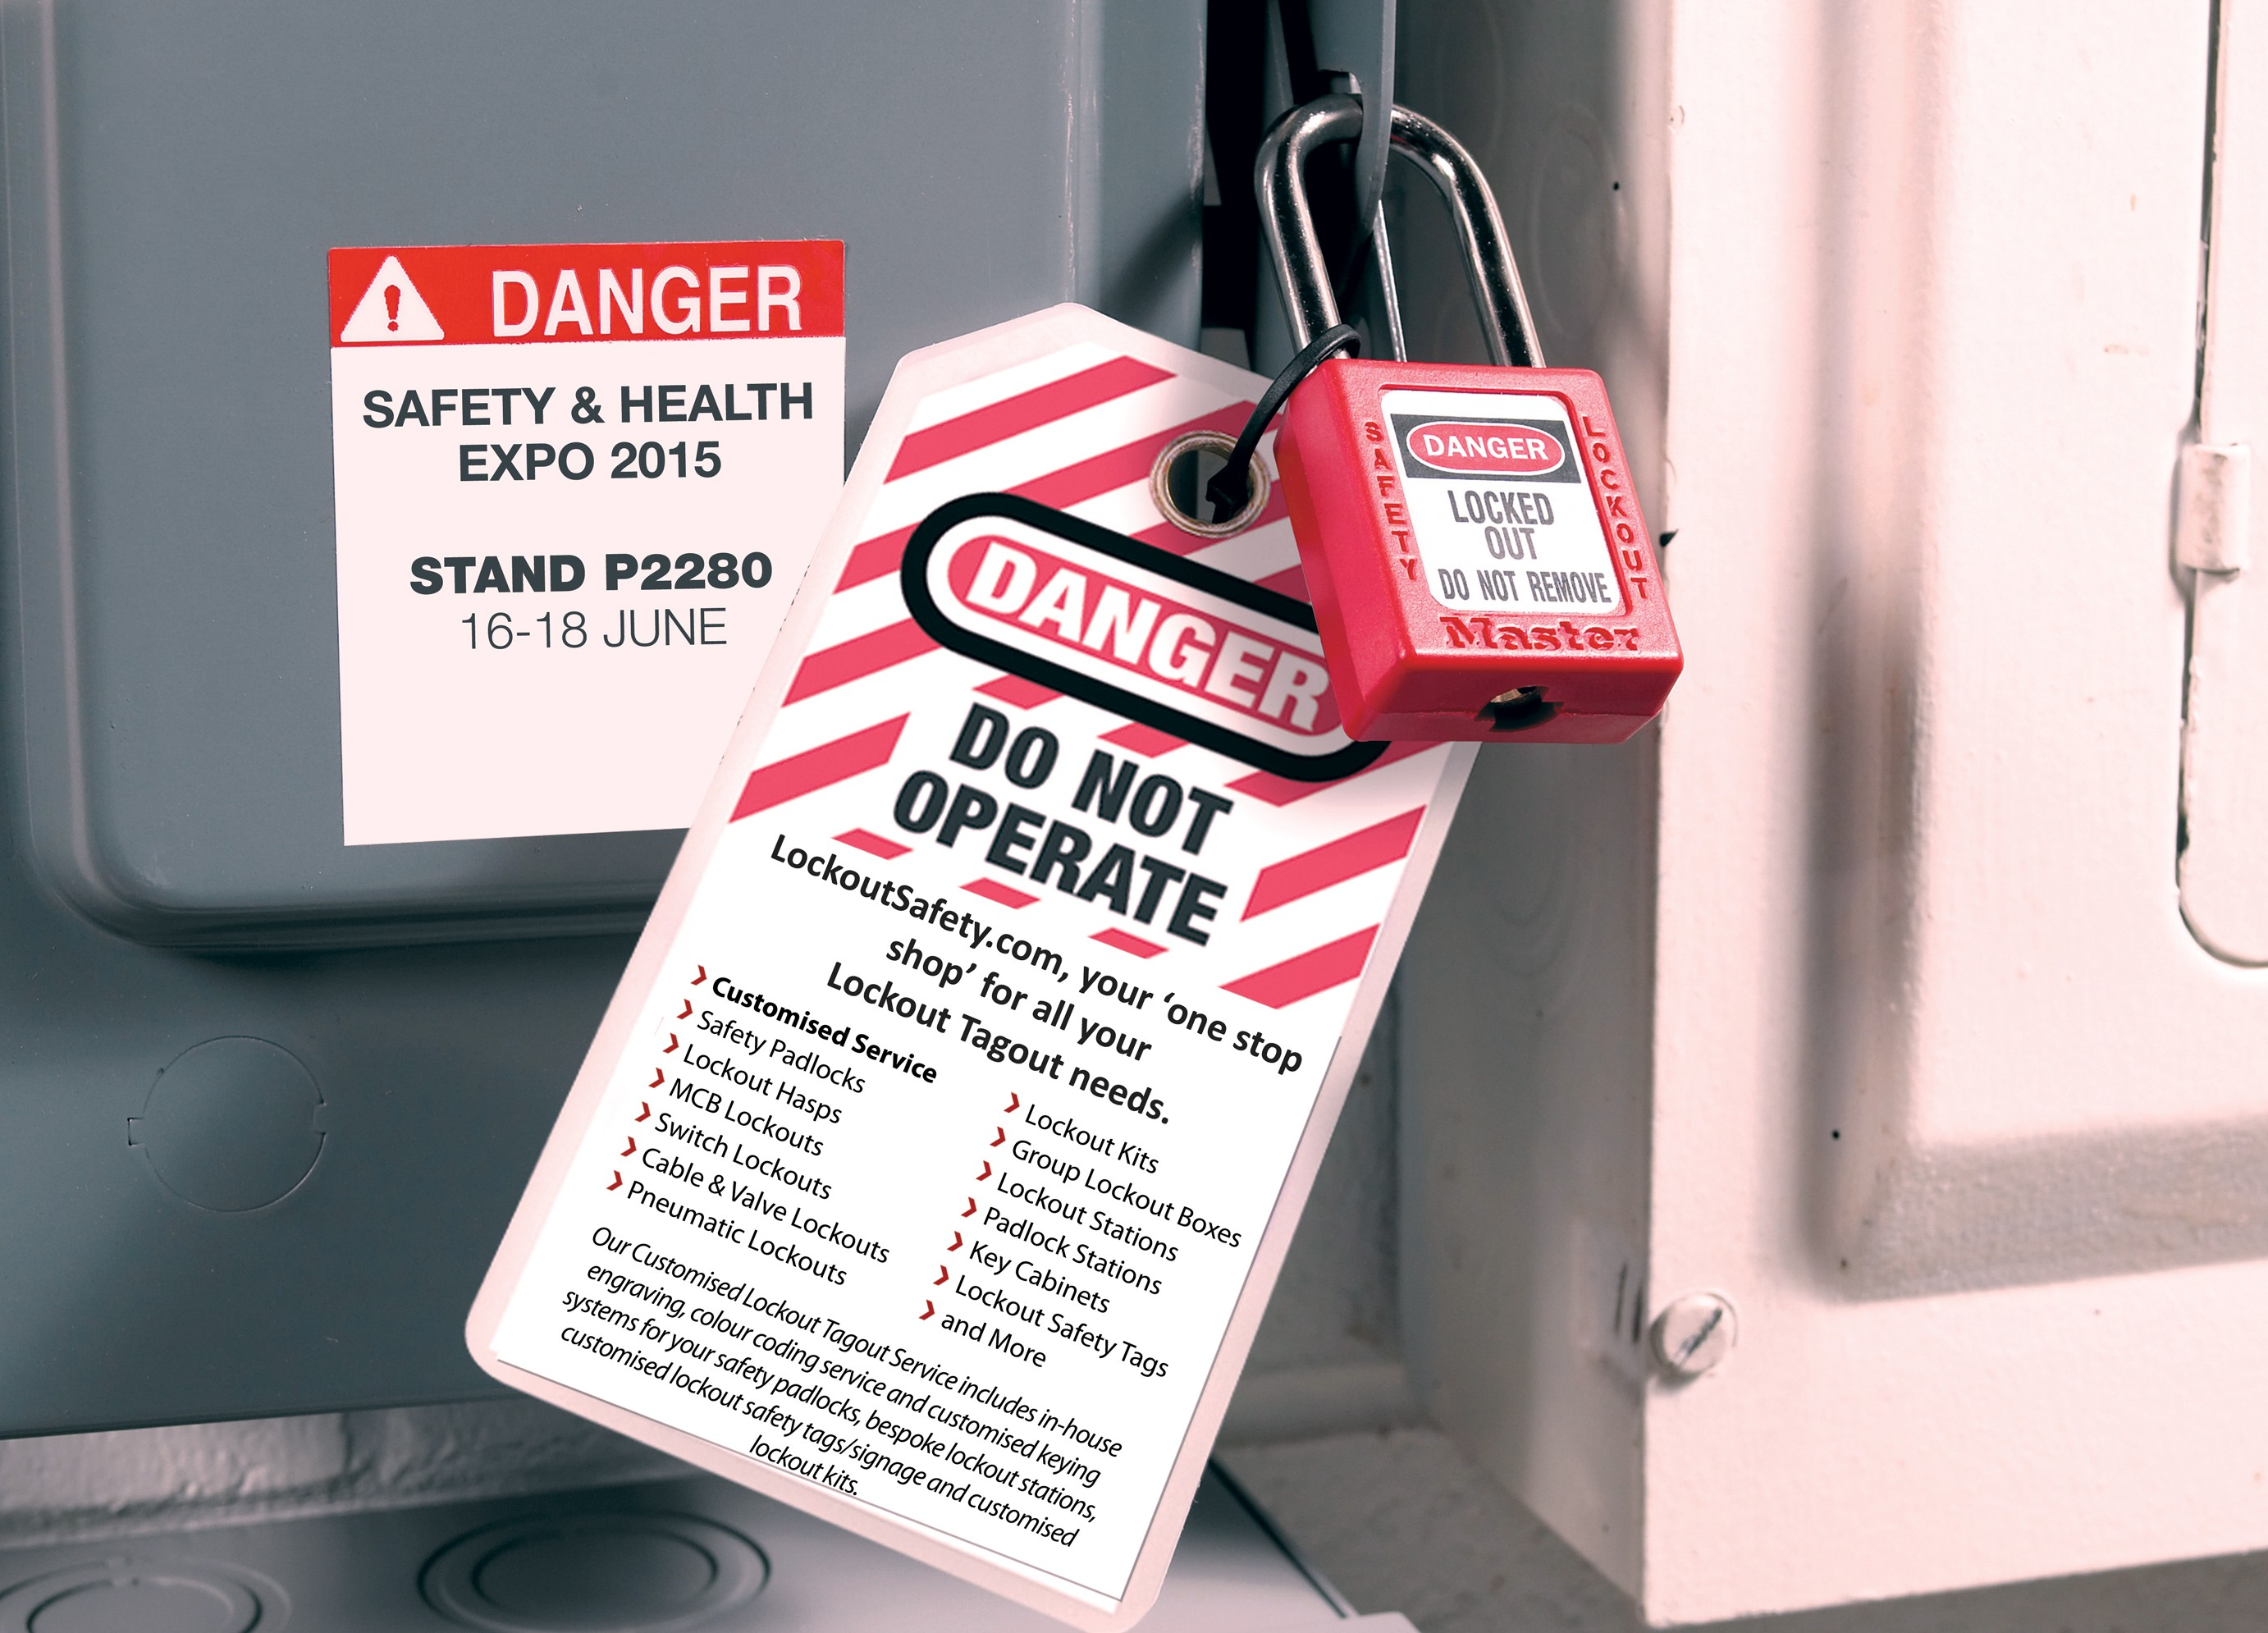 Lockout Safety @ Safety and Health Expo 2015